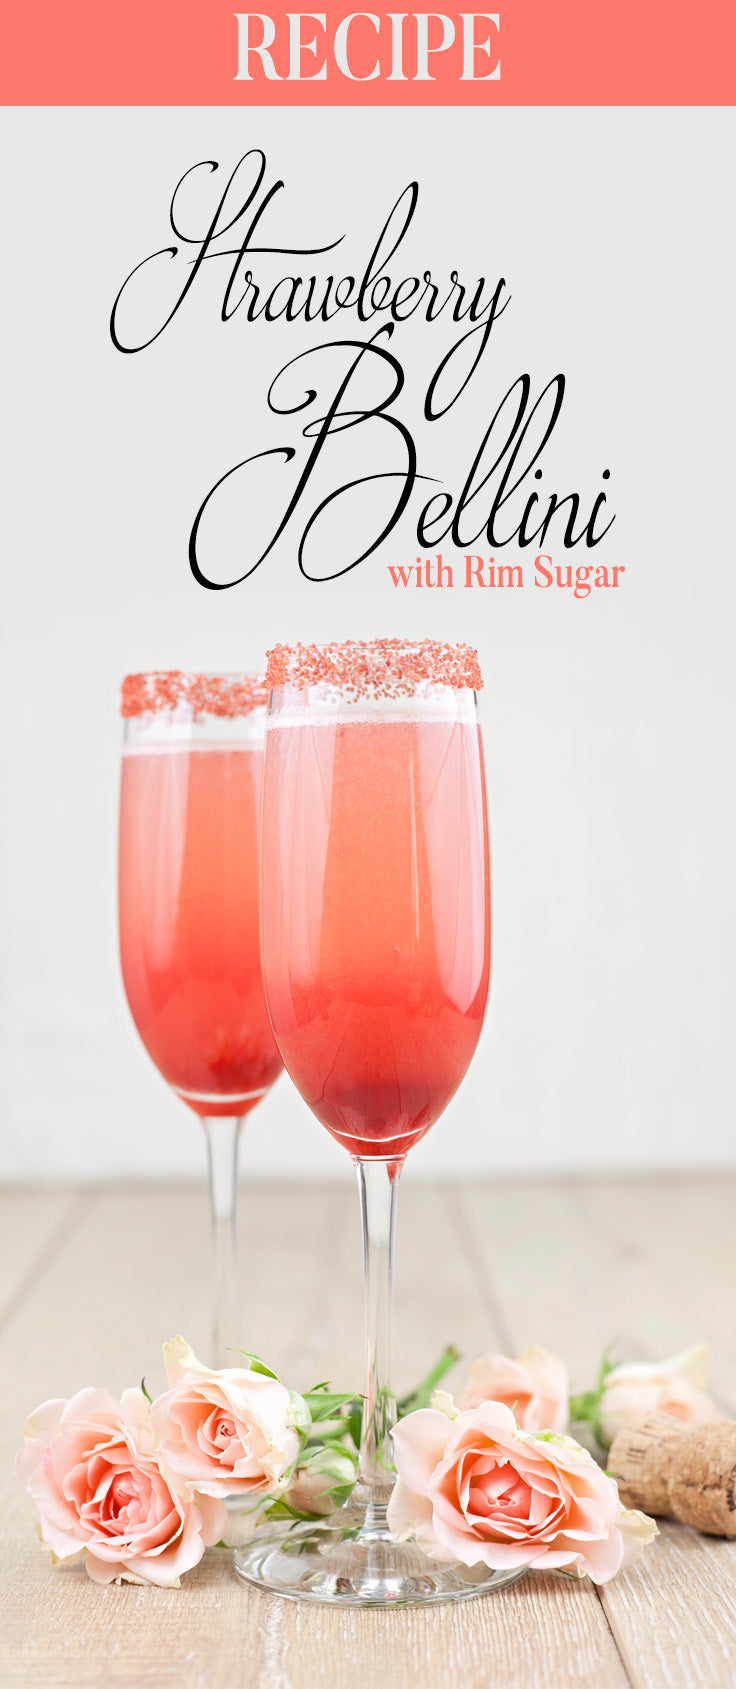 Valentine's Day Cocktail - Strawberry Bellini with Rim Sugar